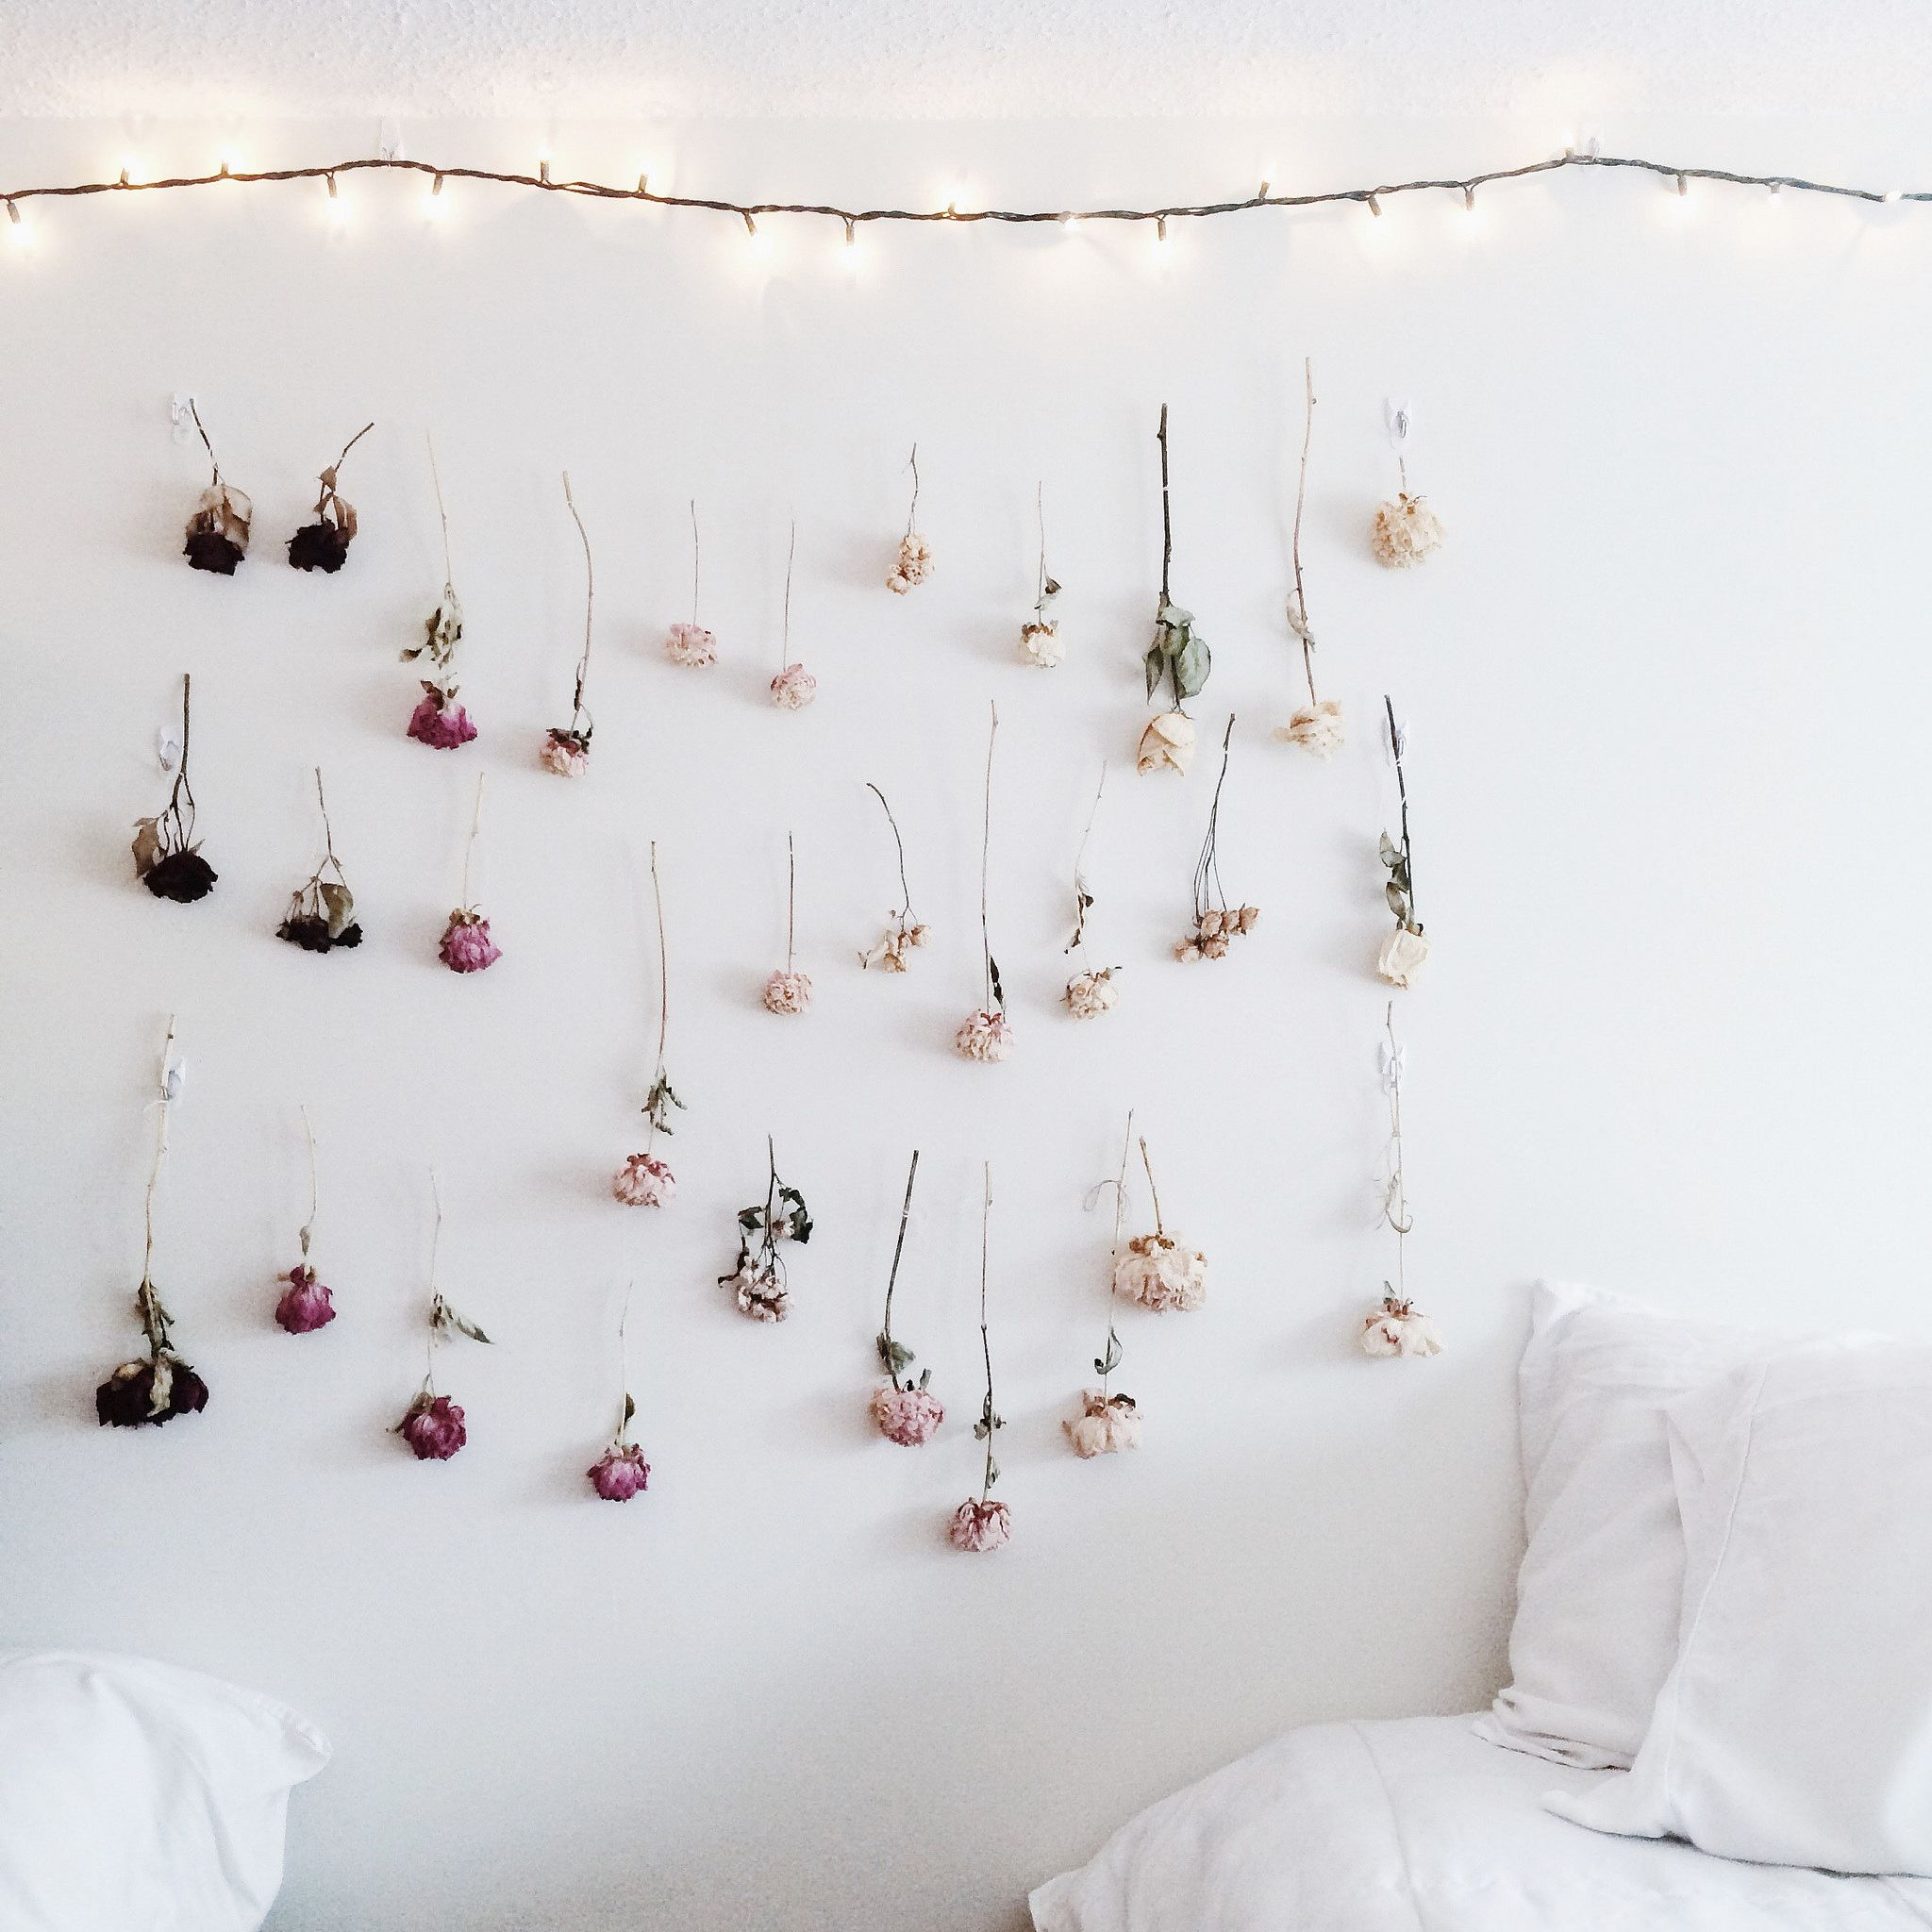 How to make your own Ombre Dried Flower Wall on juliettelaura.blogspot.com  Juliette ...